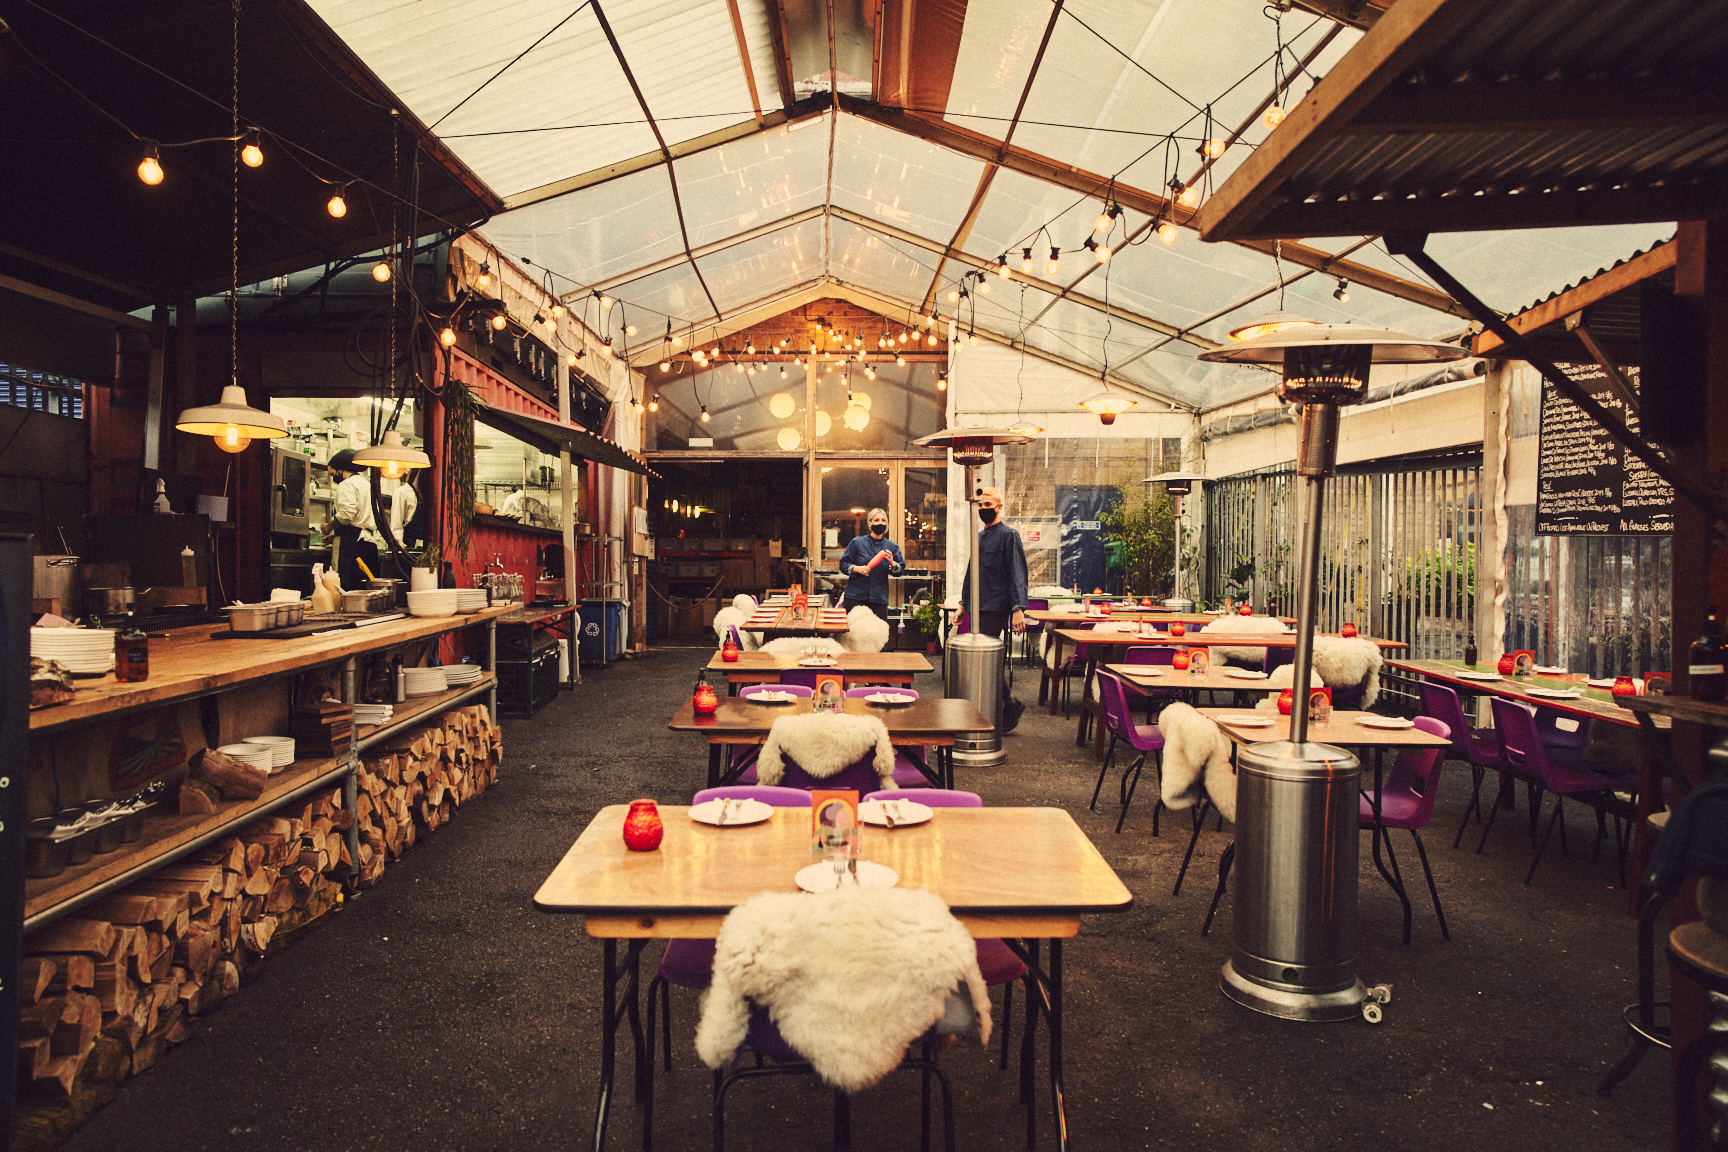 Brat restaurant pop up at Climpson's Arch in Hackney